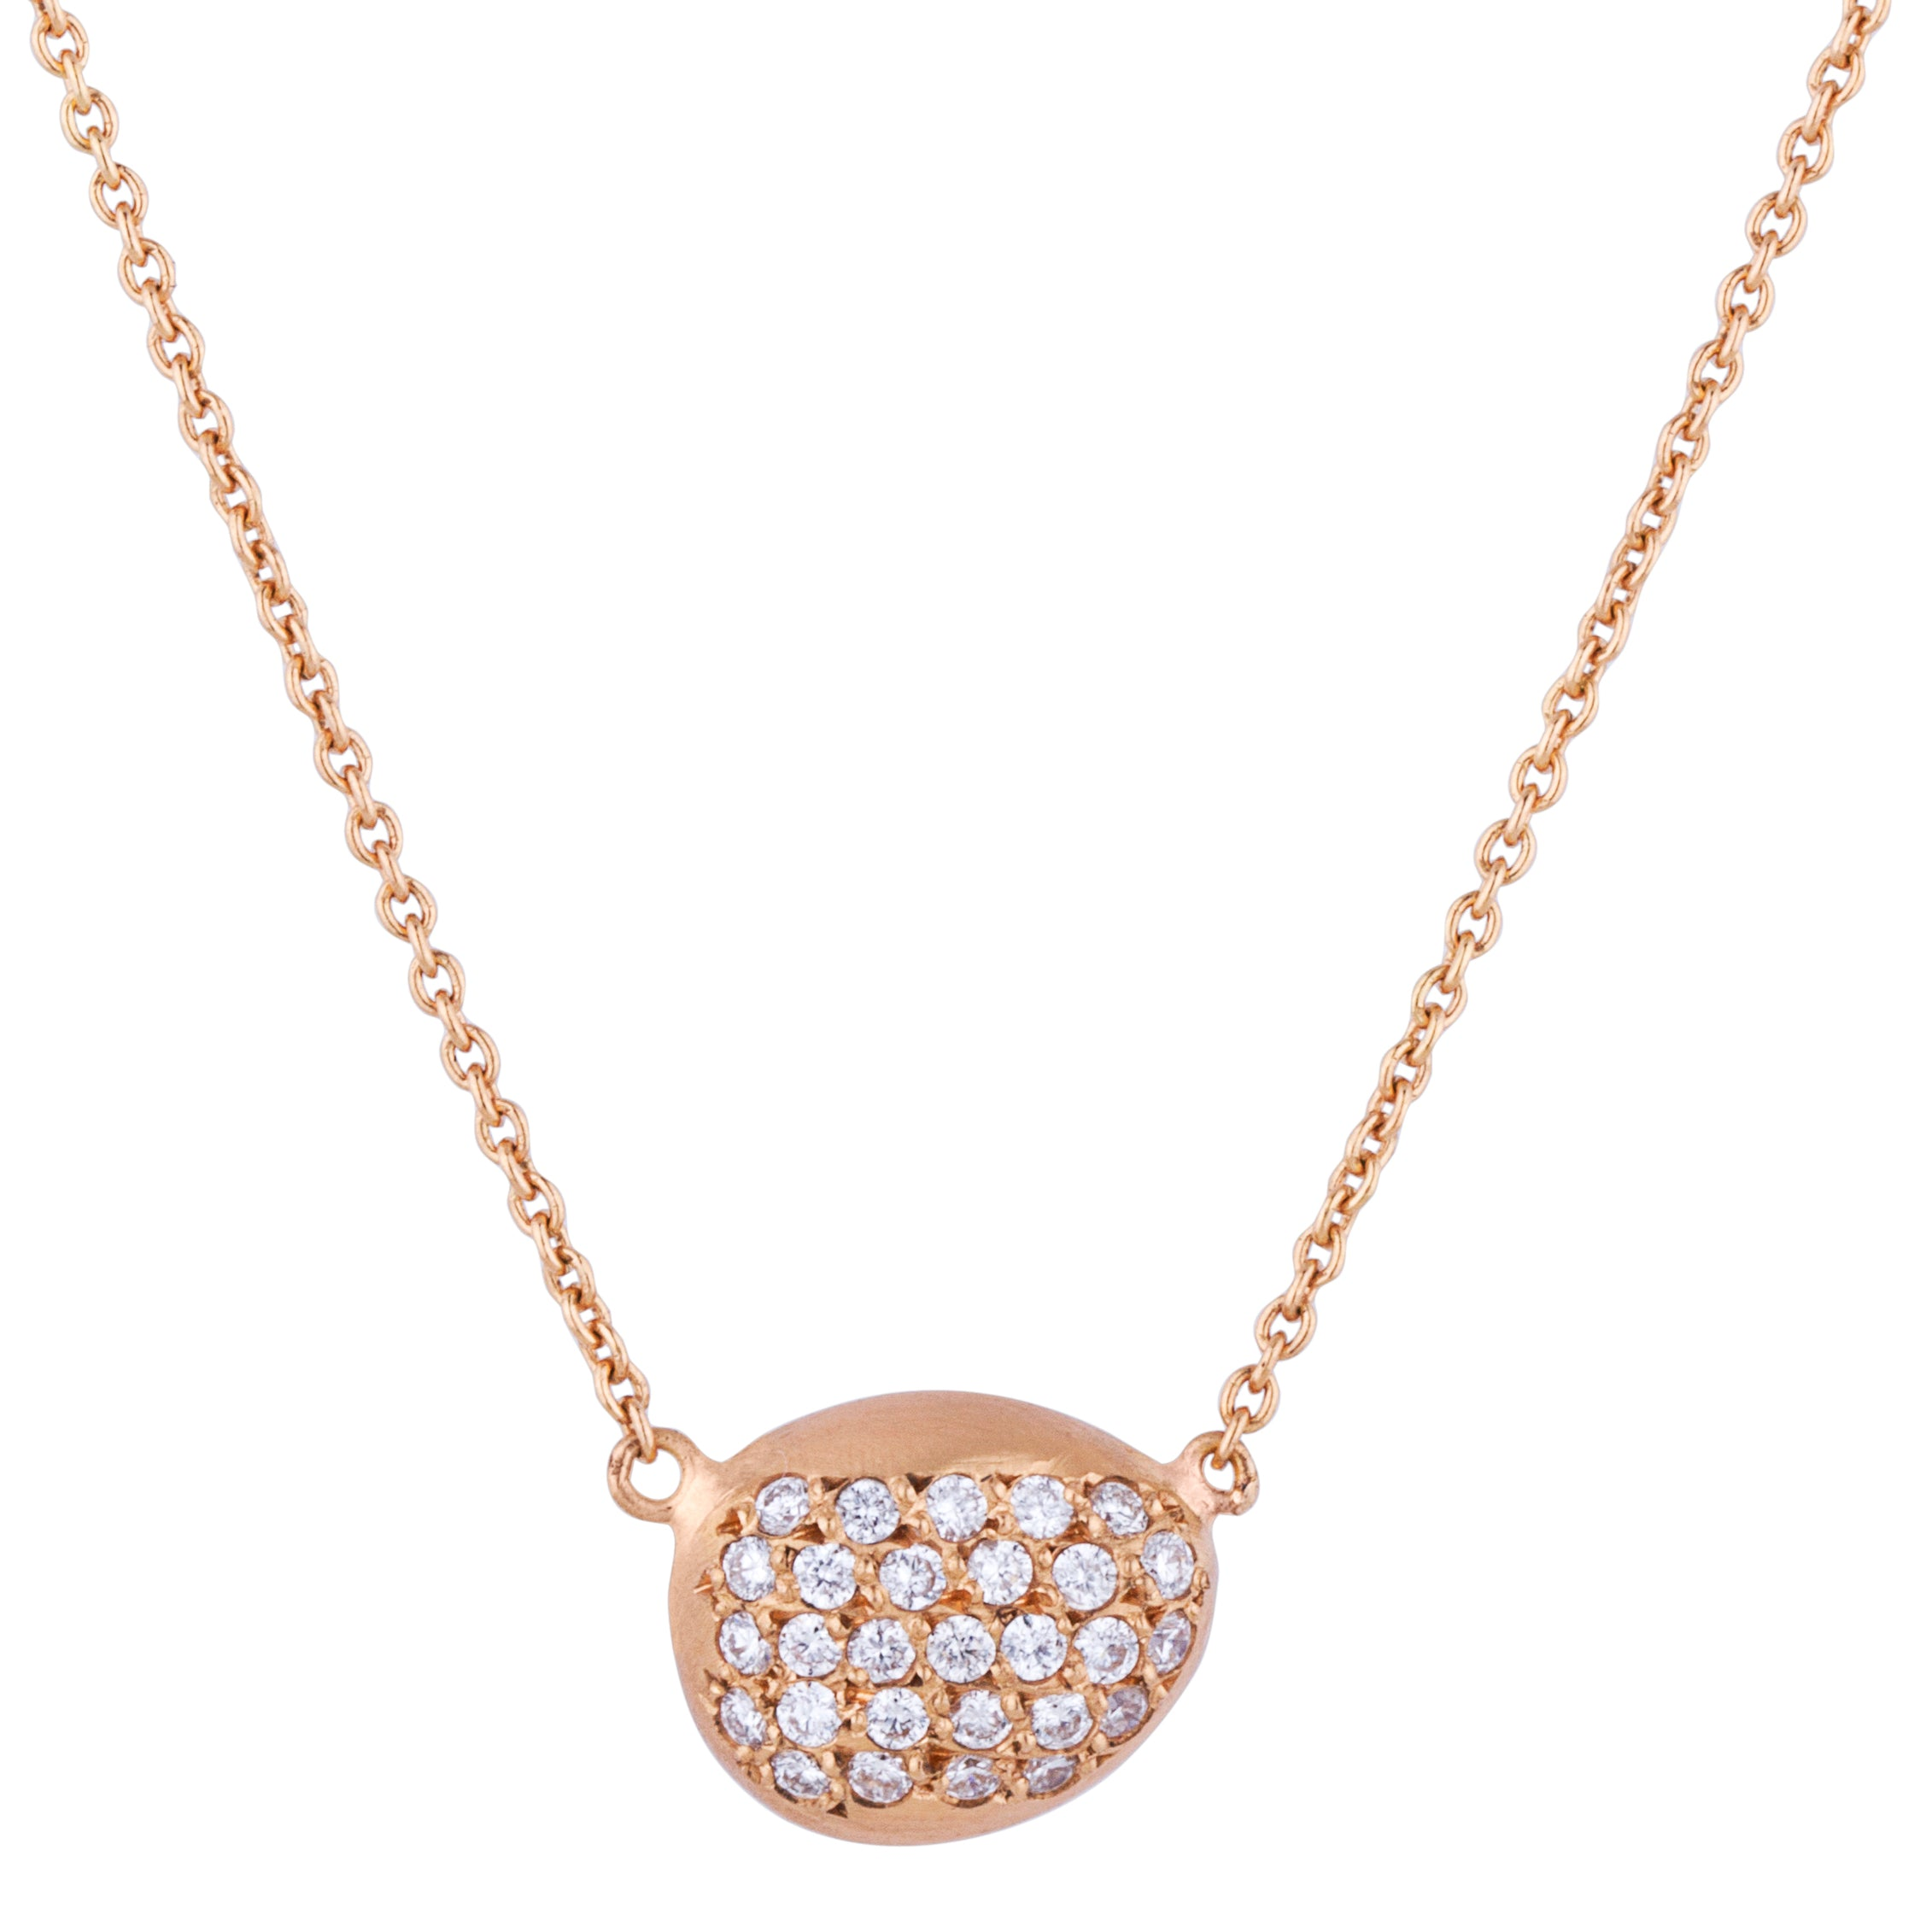 "Lika Behar Peach Glow ""Chained"" Single Pebble Diamond Necklace 22K Rose Gold"